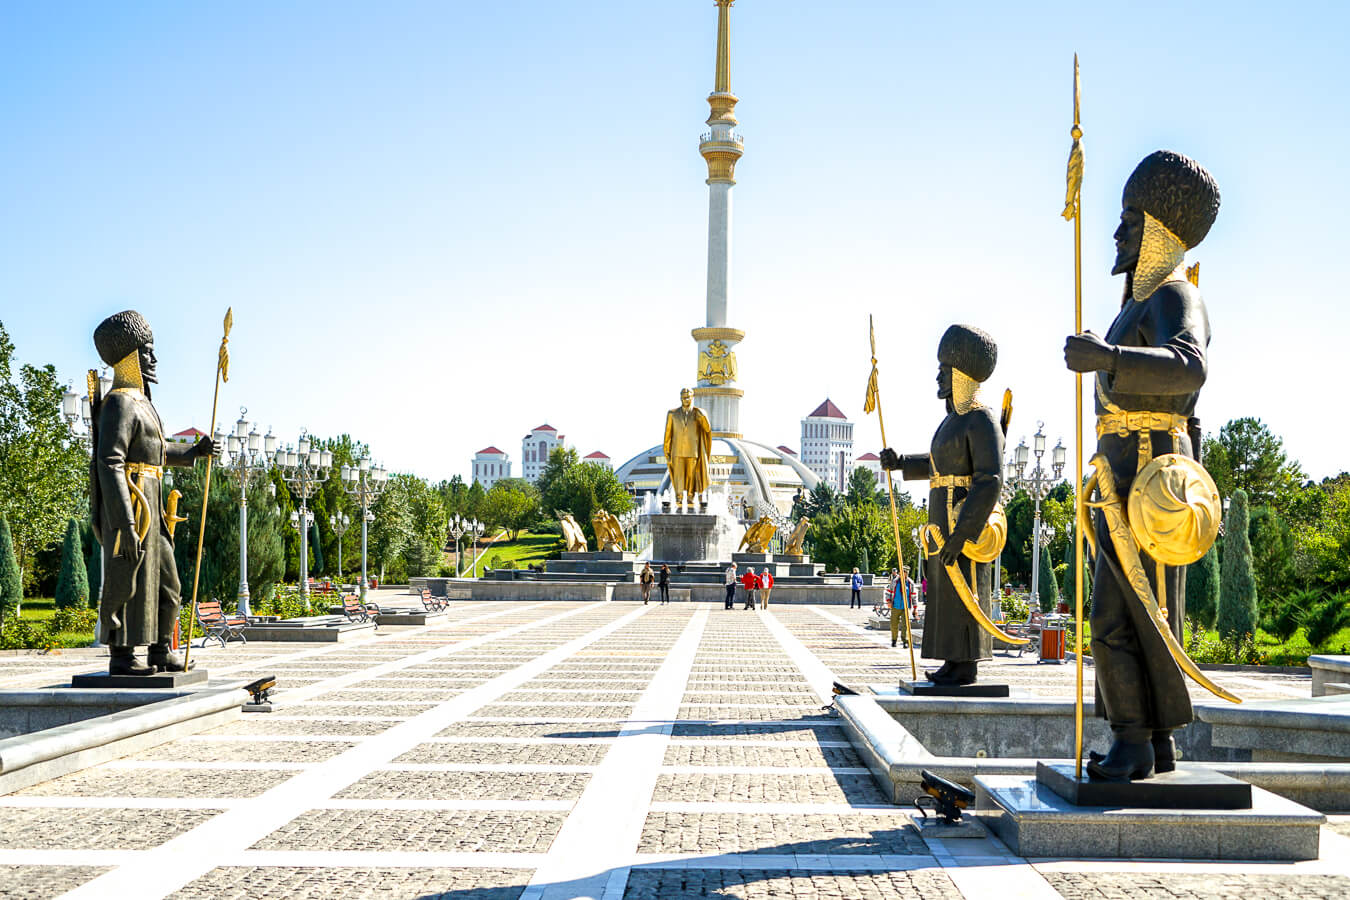 Ashgabat is the capital of Turkmenistan